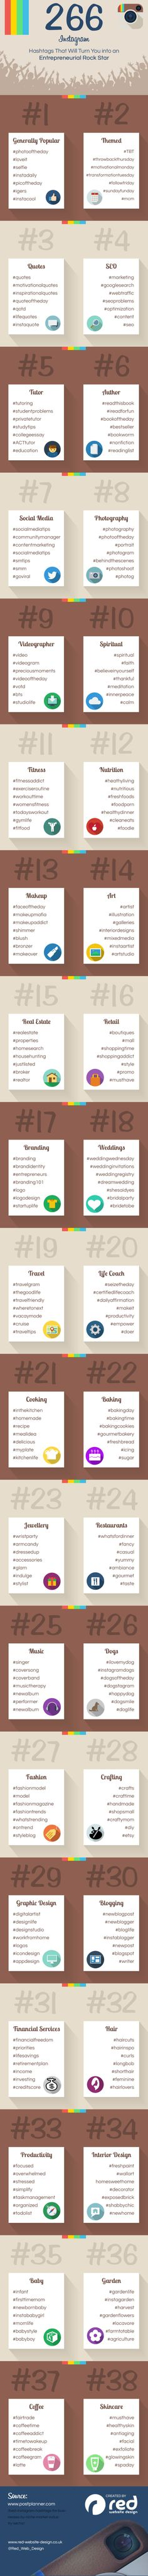 266 Instagram Hashtags For Entrepreneurial Rock Stars - If you want to become an entrepreneurial rock star on Instagram, use these 266 Instagram hashtags. They will do wonders to your influence! - #infographic